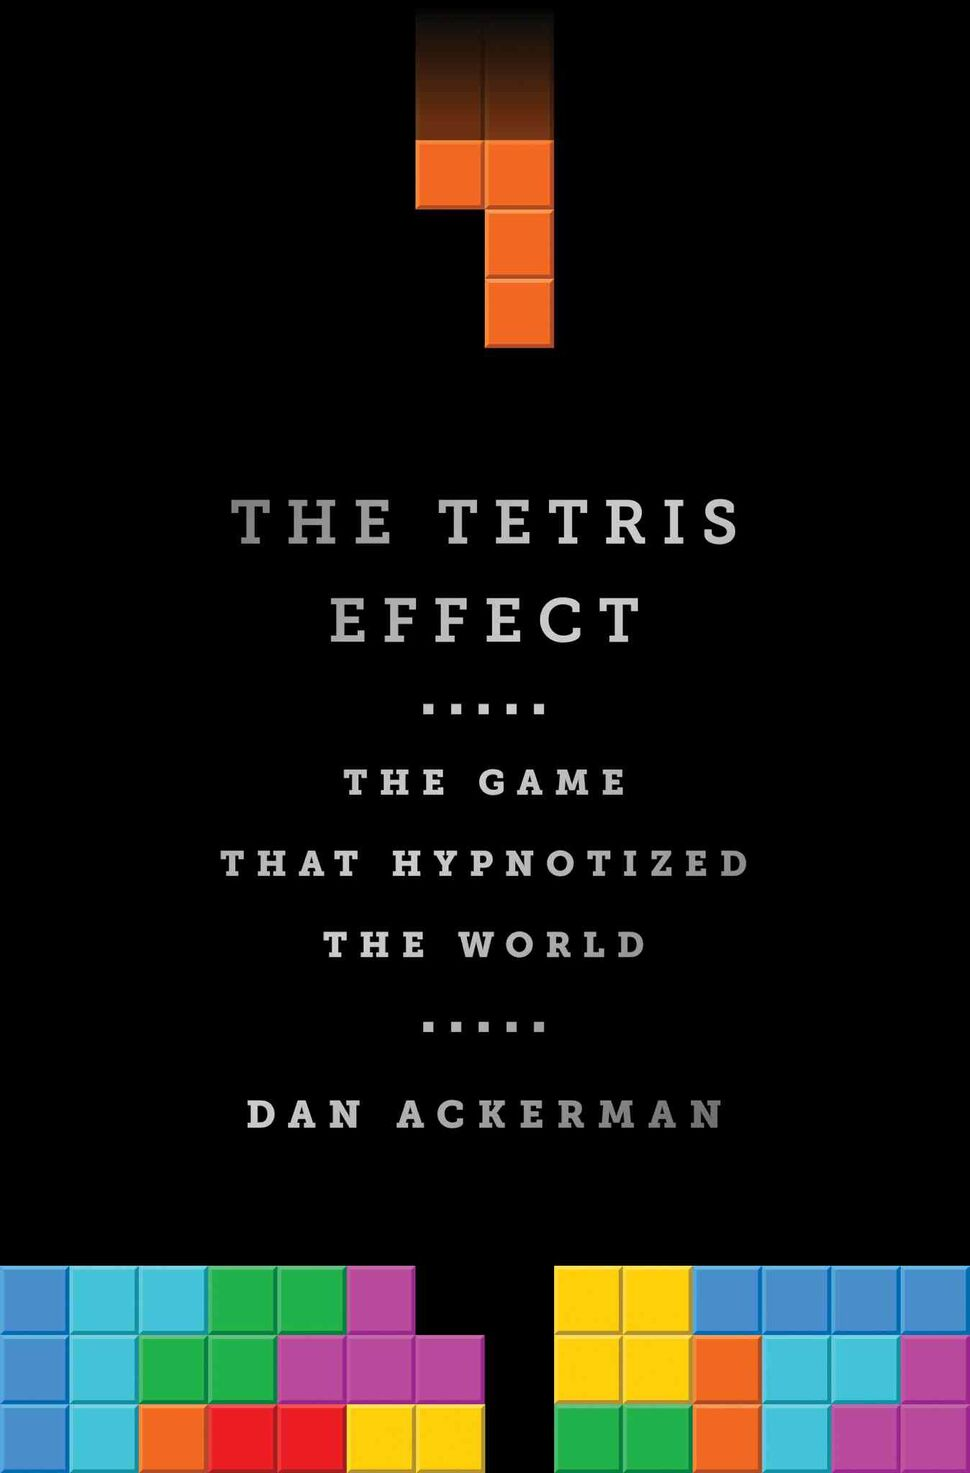 <h3>The Tetris Effect: The Game That Hypnotized the World</h3> <br/> By Dan Ackerman  <br/> <strong>In The Tetris Effect, New York technology writer and editor Dan Ackerman has crafted a detailed look at the fascinating, behind-the-scenes drama of the complex negotiations for the rights to this seemingly simple video game.</strong> <br/> — Julie Kentner